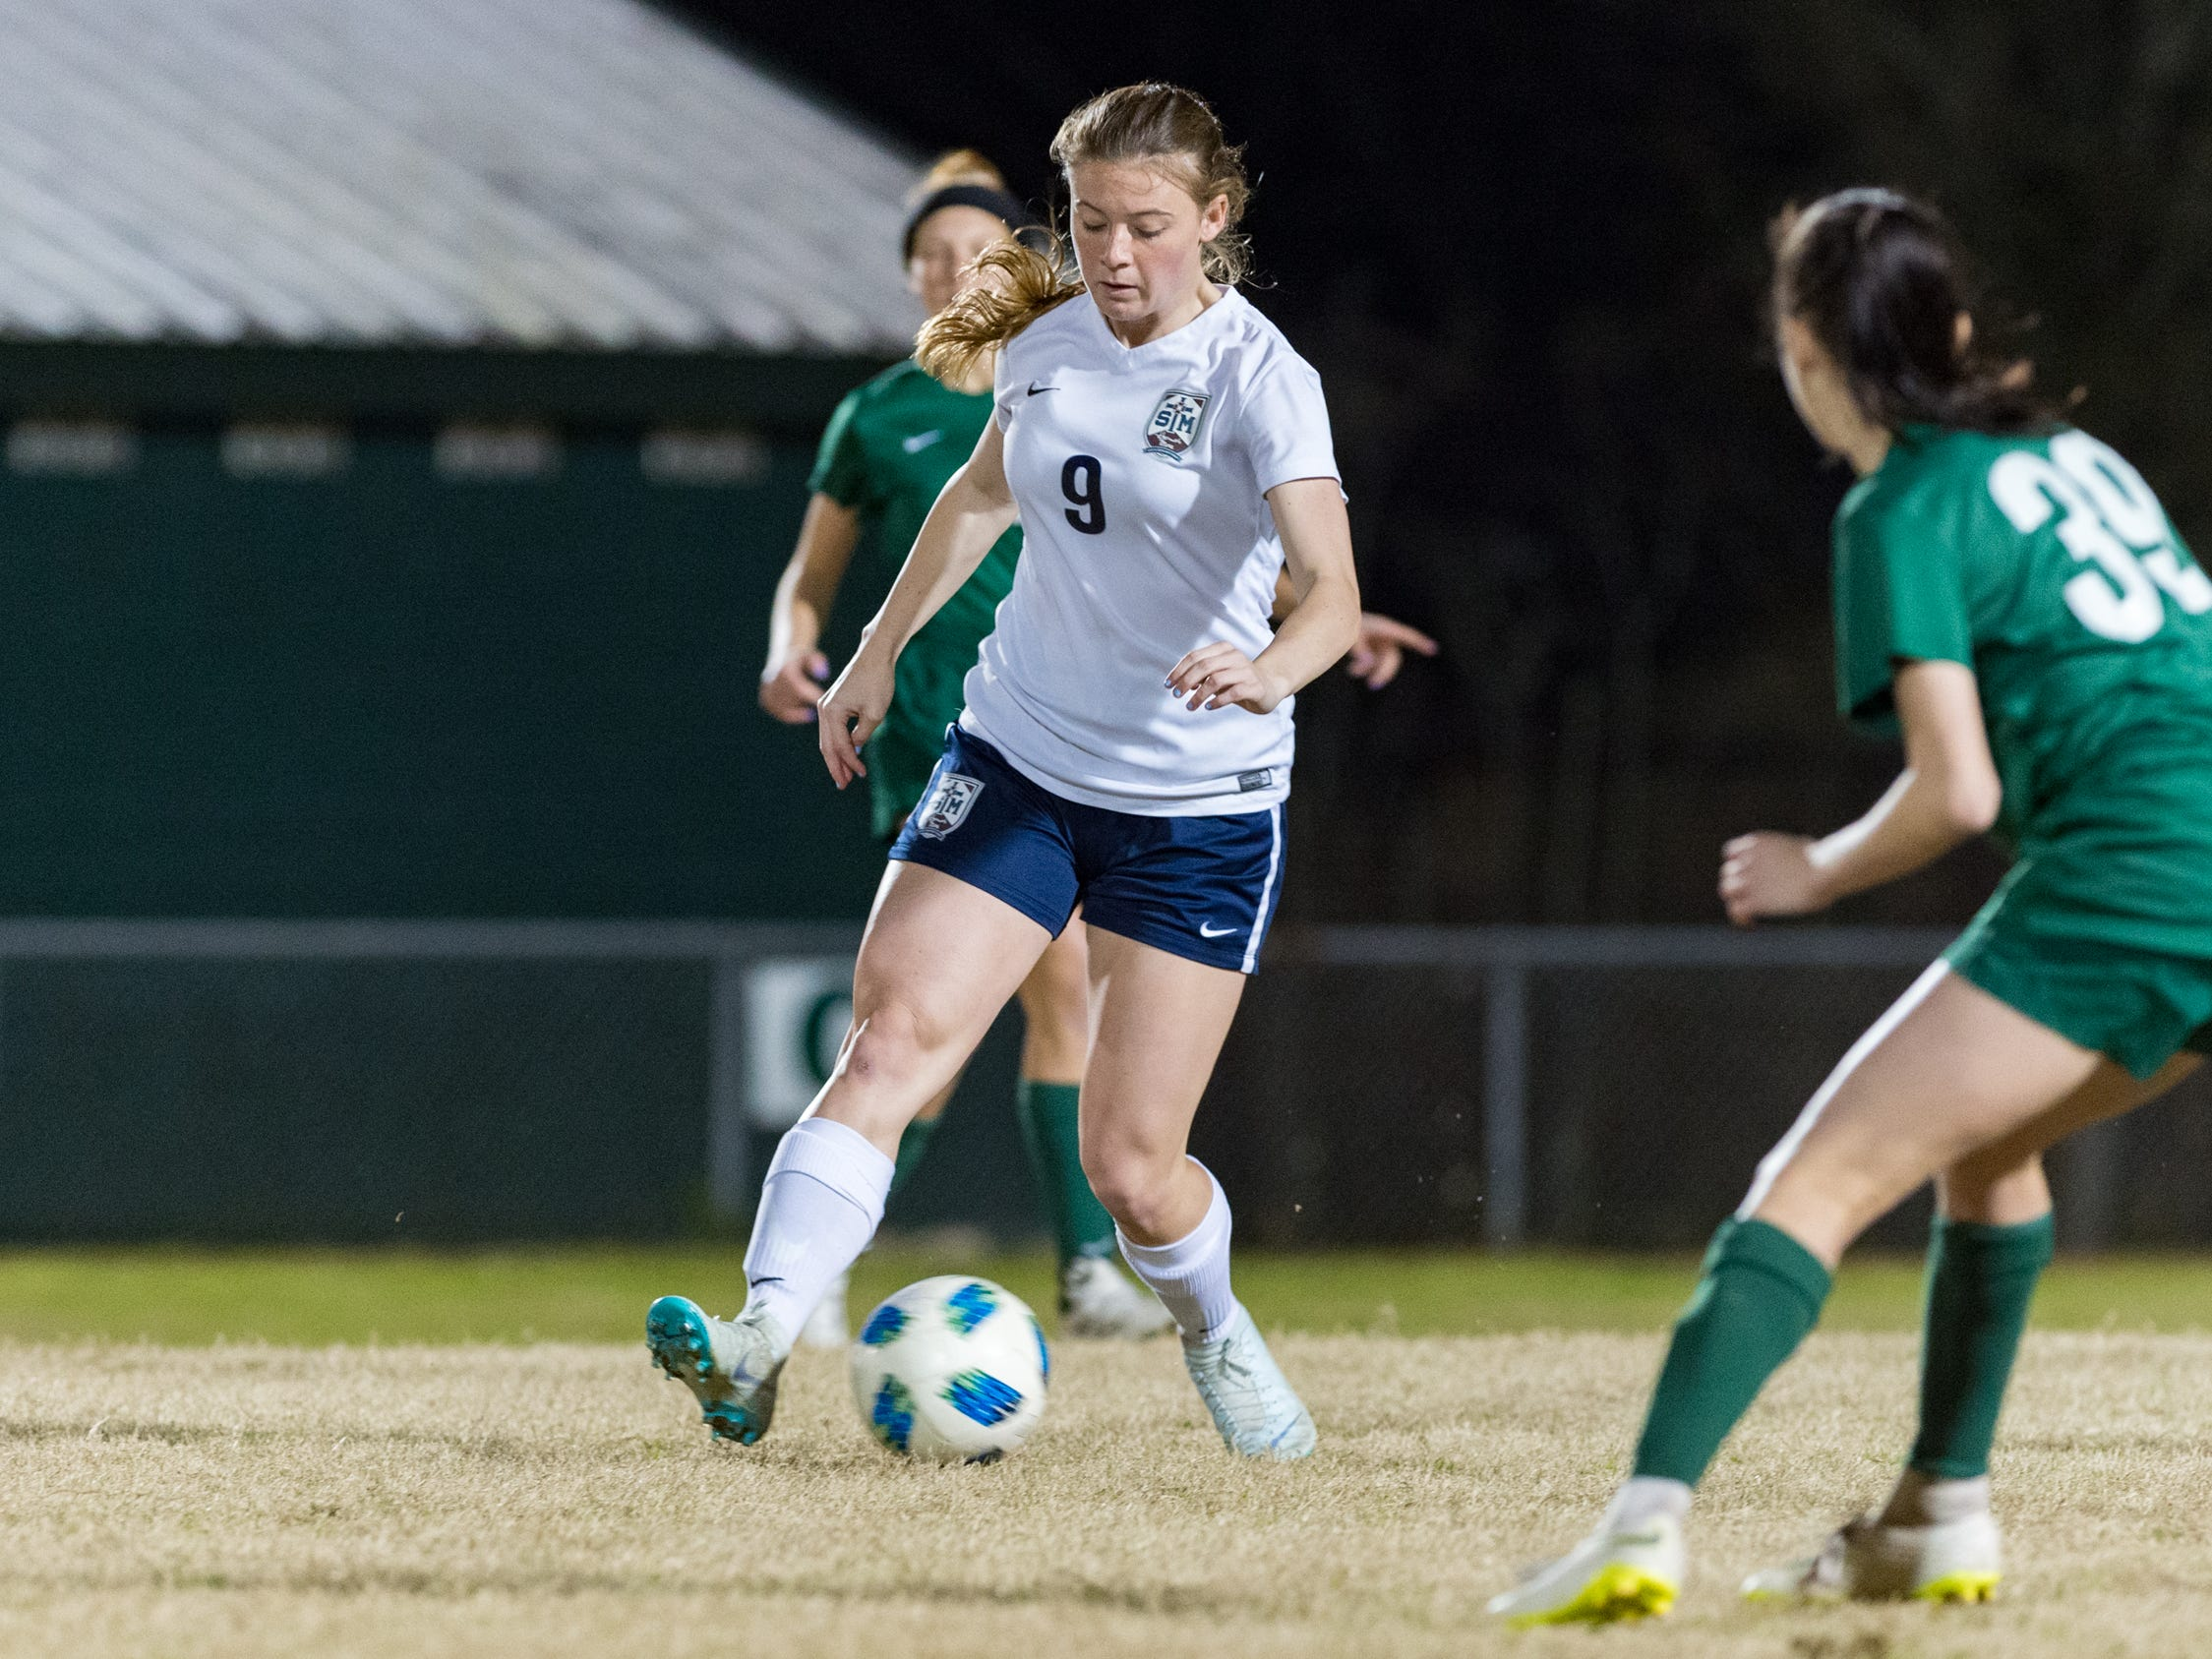 Peyton St. Pierre moves the ball as Acadiana takes on STM girls soccer. Monday, Jan. 28, 2019.